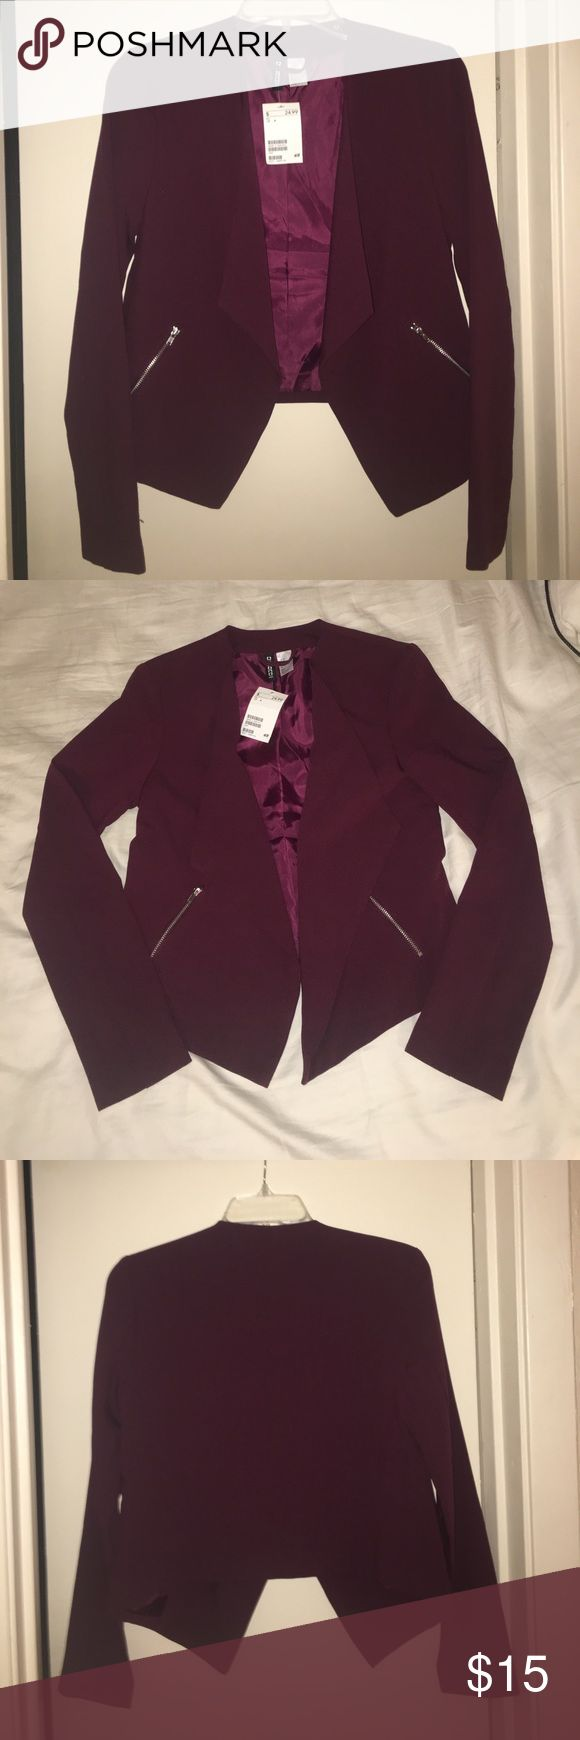 NEW WITH TAGS - H&M Maroon Blazer NEVER BEEN WORN - Maroon Blazer with silver zipper detail H&M Jackets & Coats Blazers